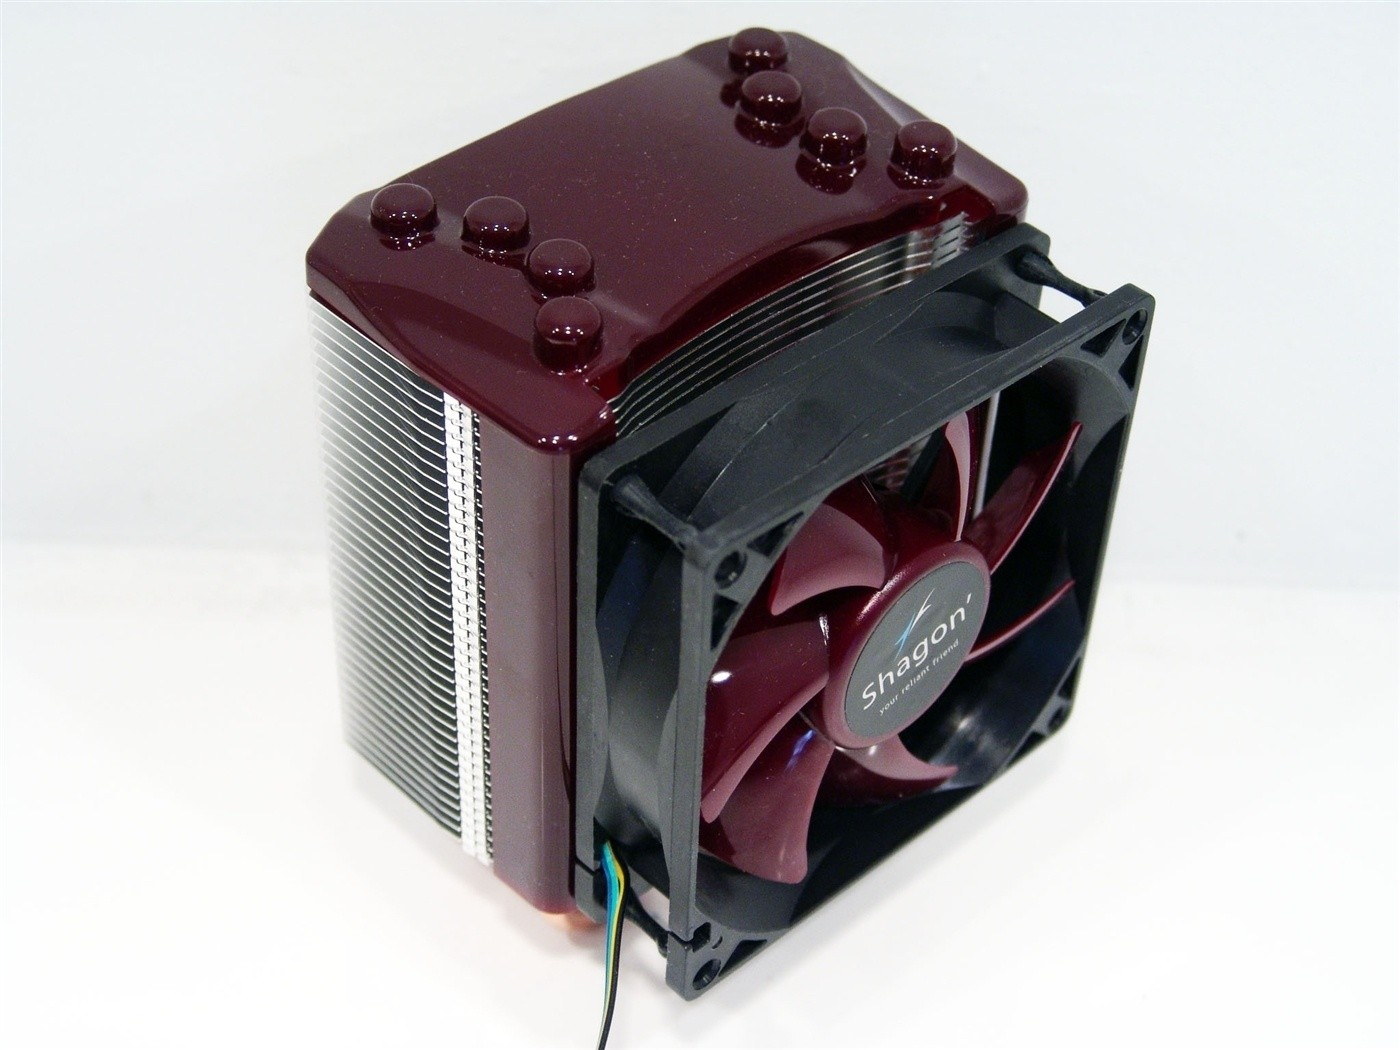 auras_shagon_arc_118_cpu_cooler_review